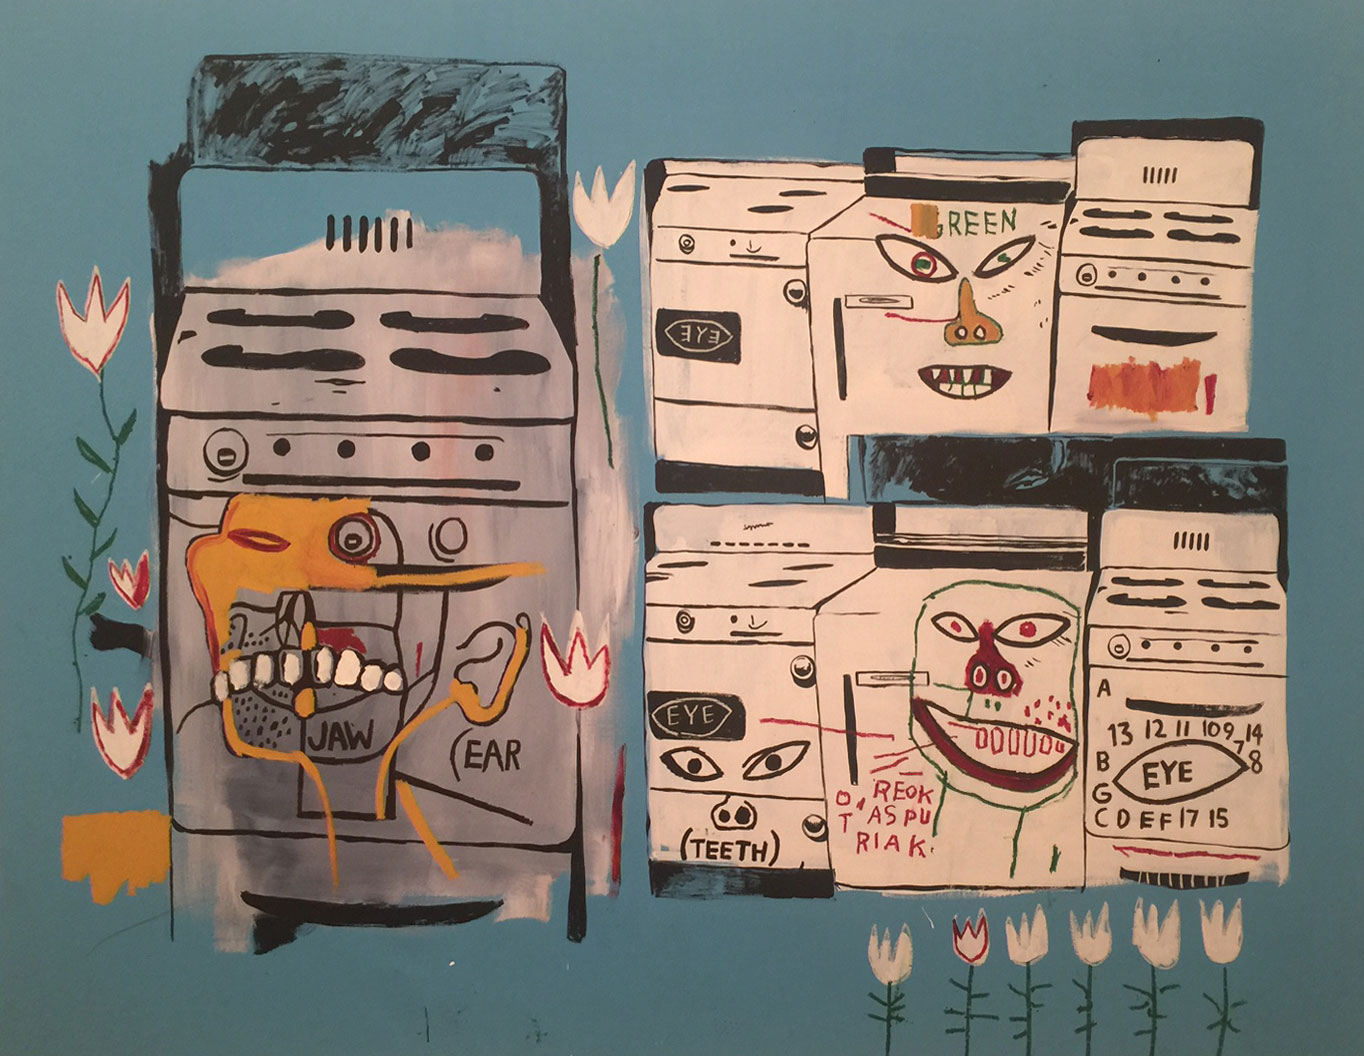 A Basquiat in the Guggenheim's exhibition